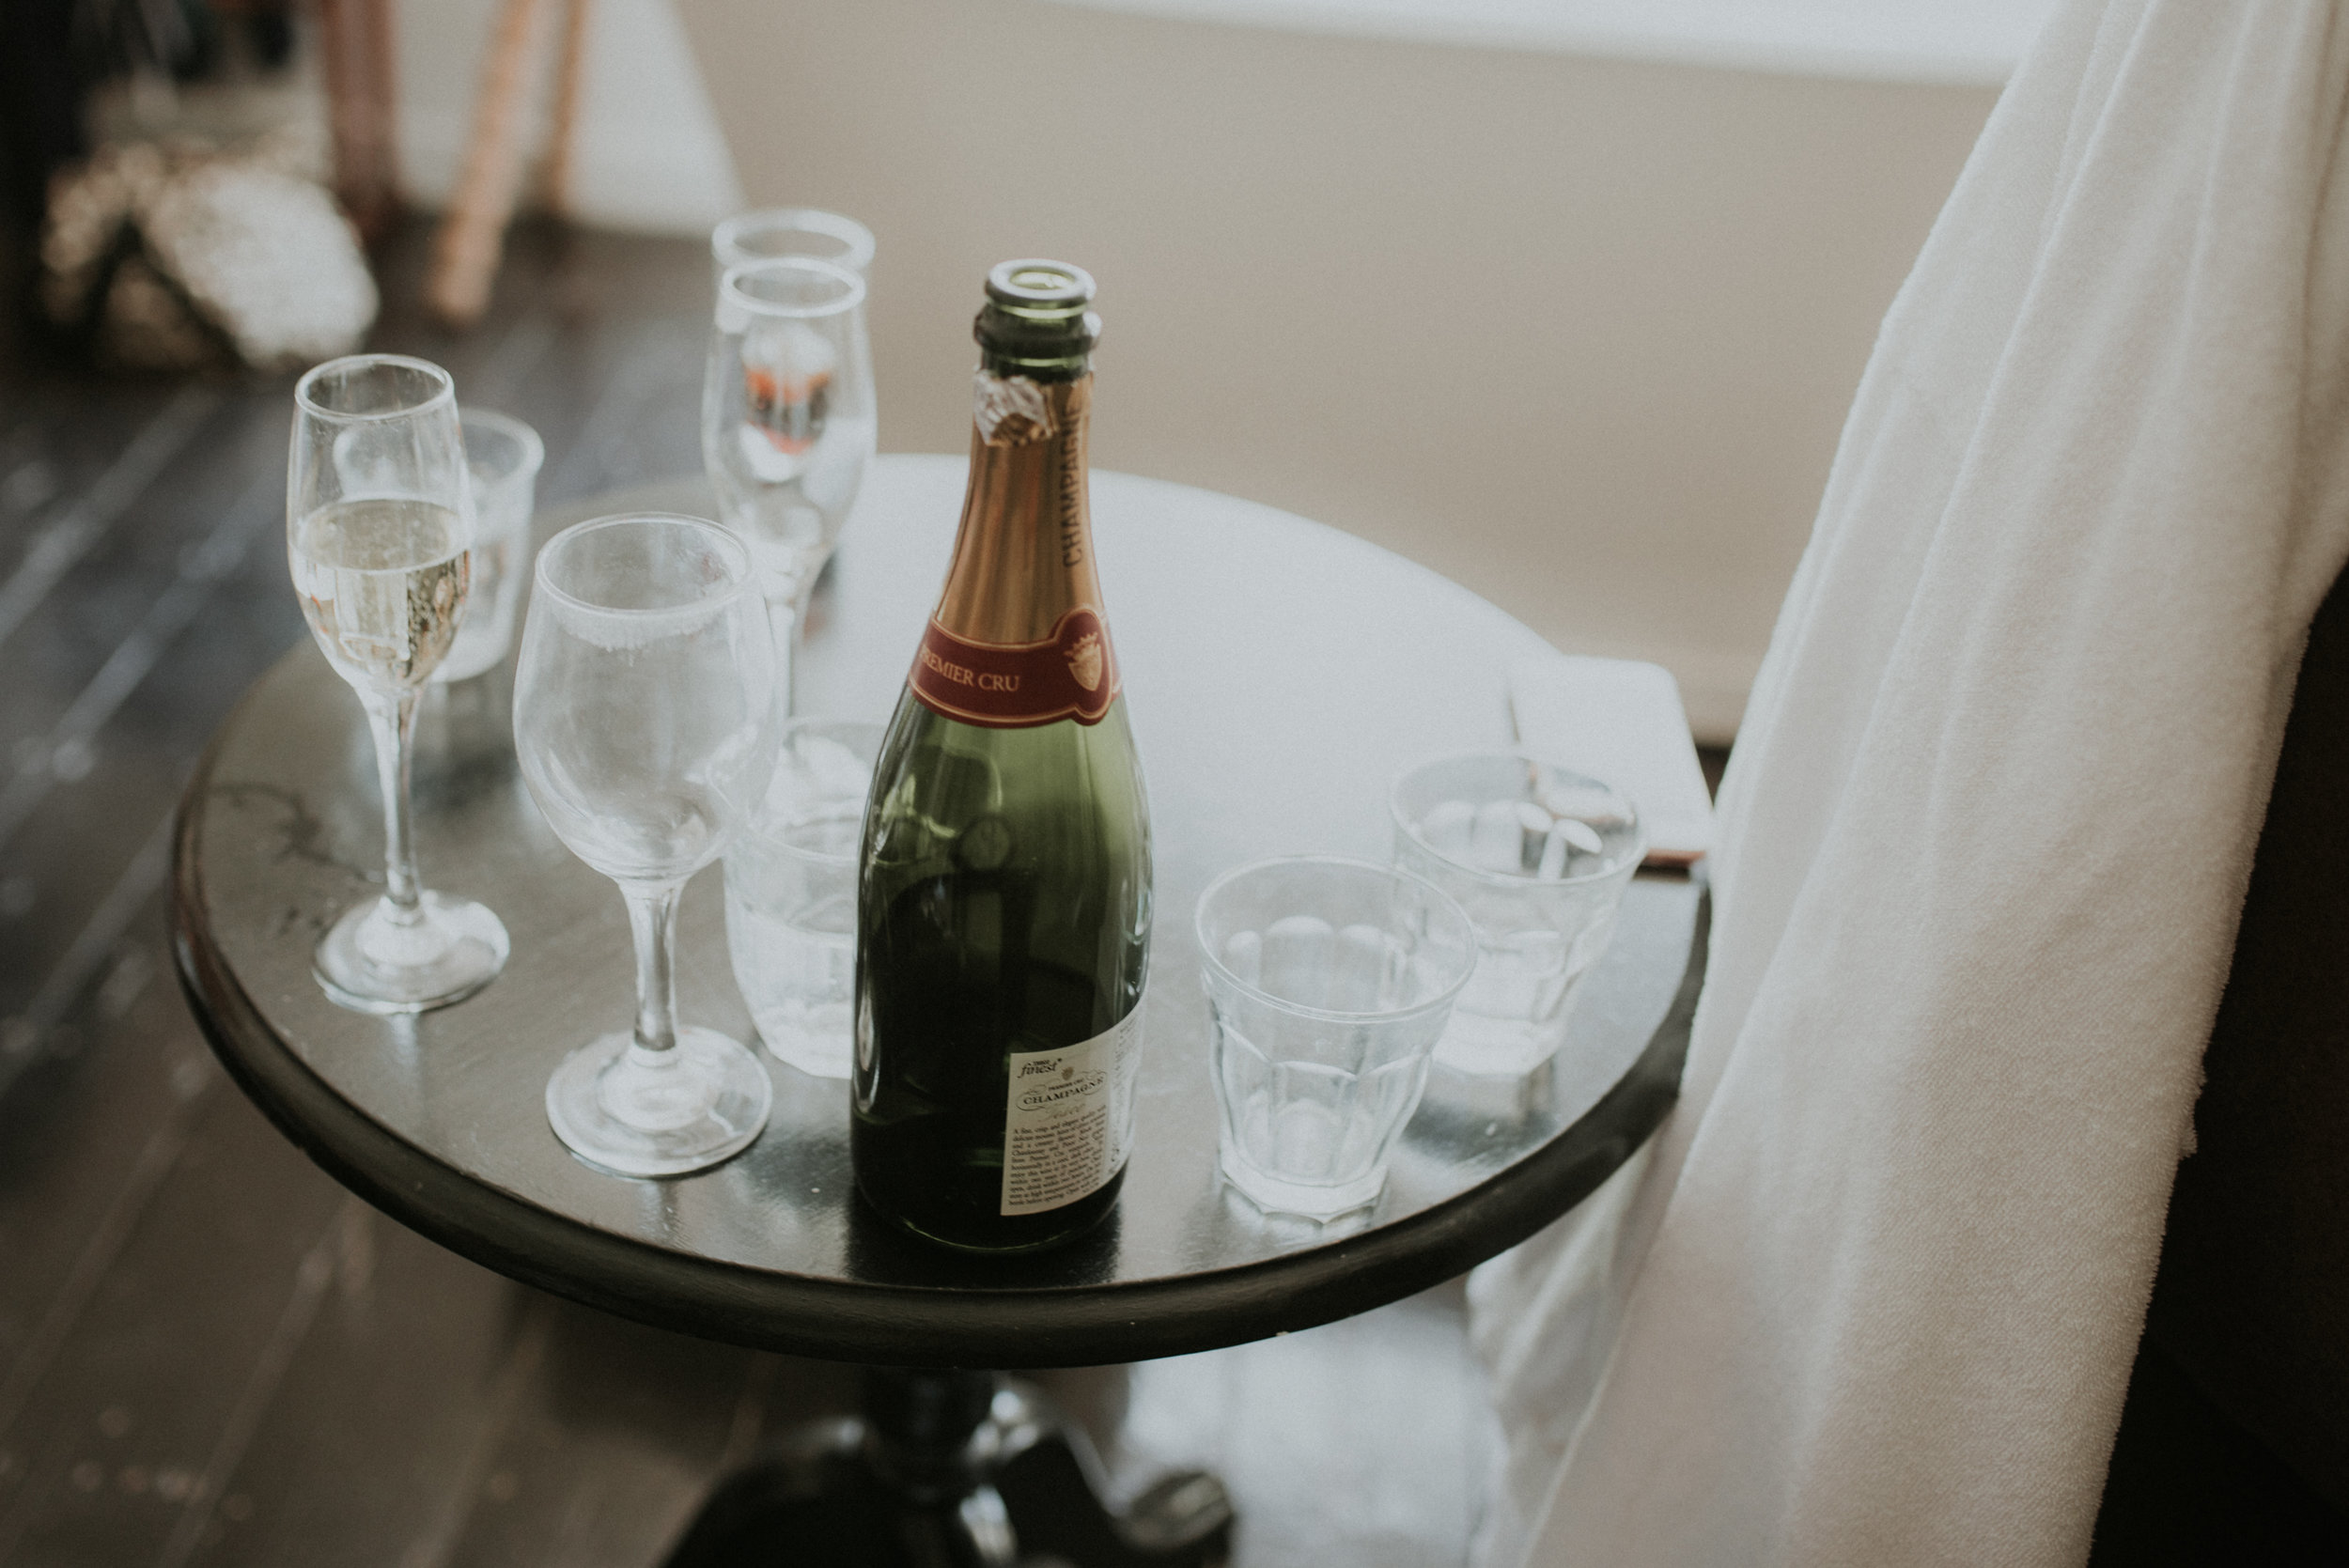 Fizz while getting ready to marry